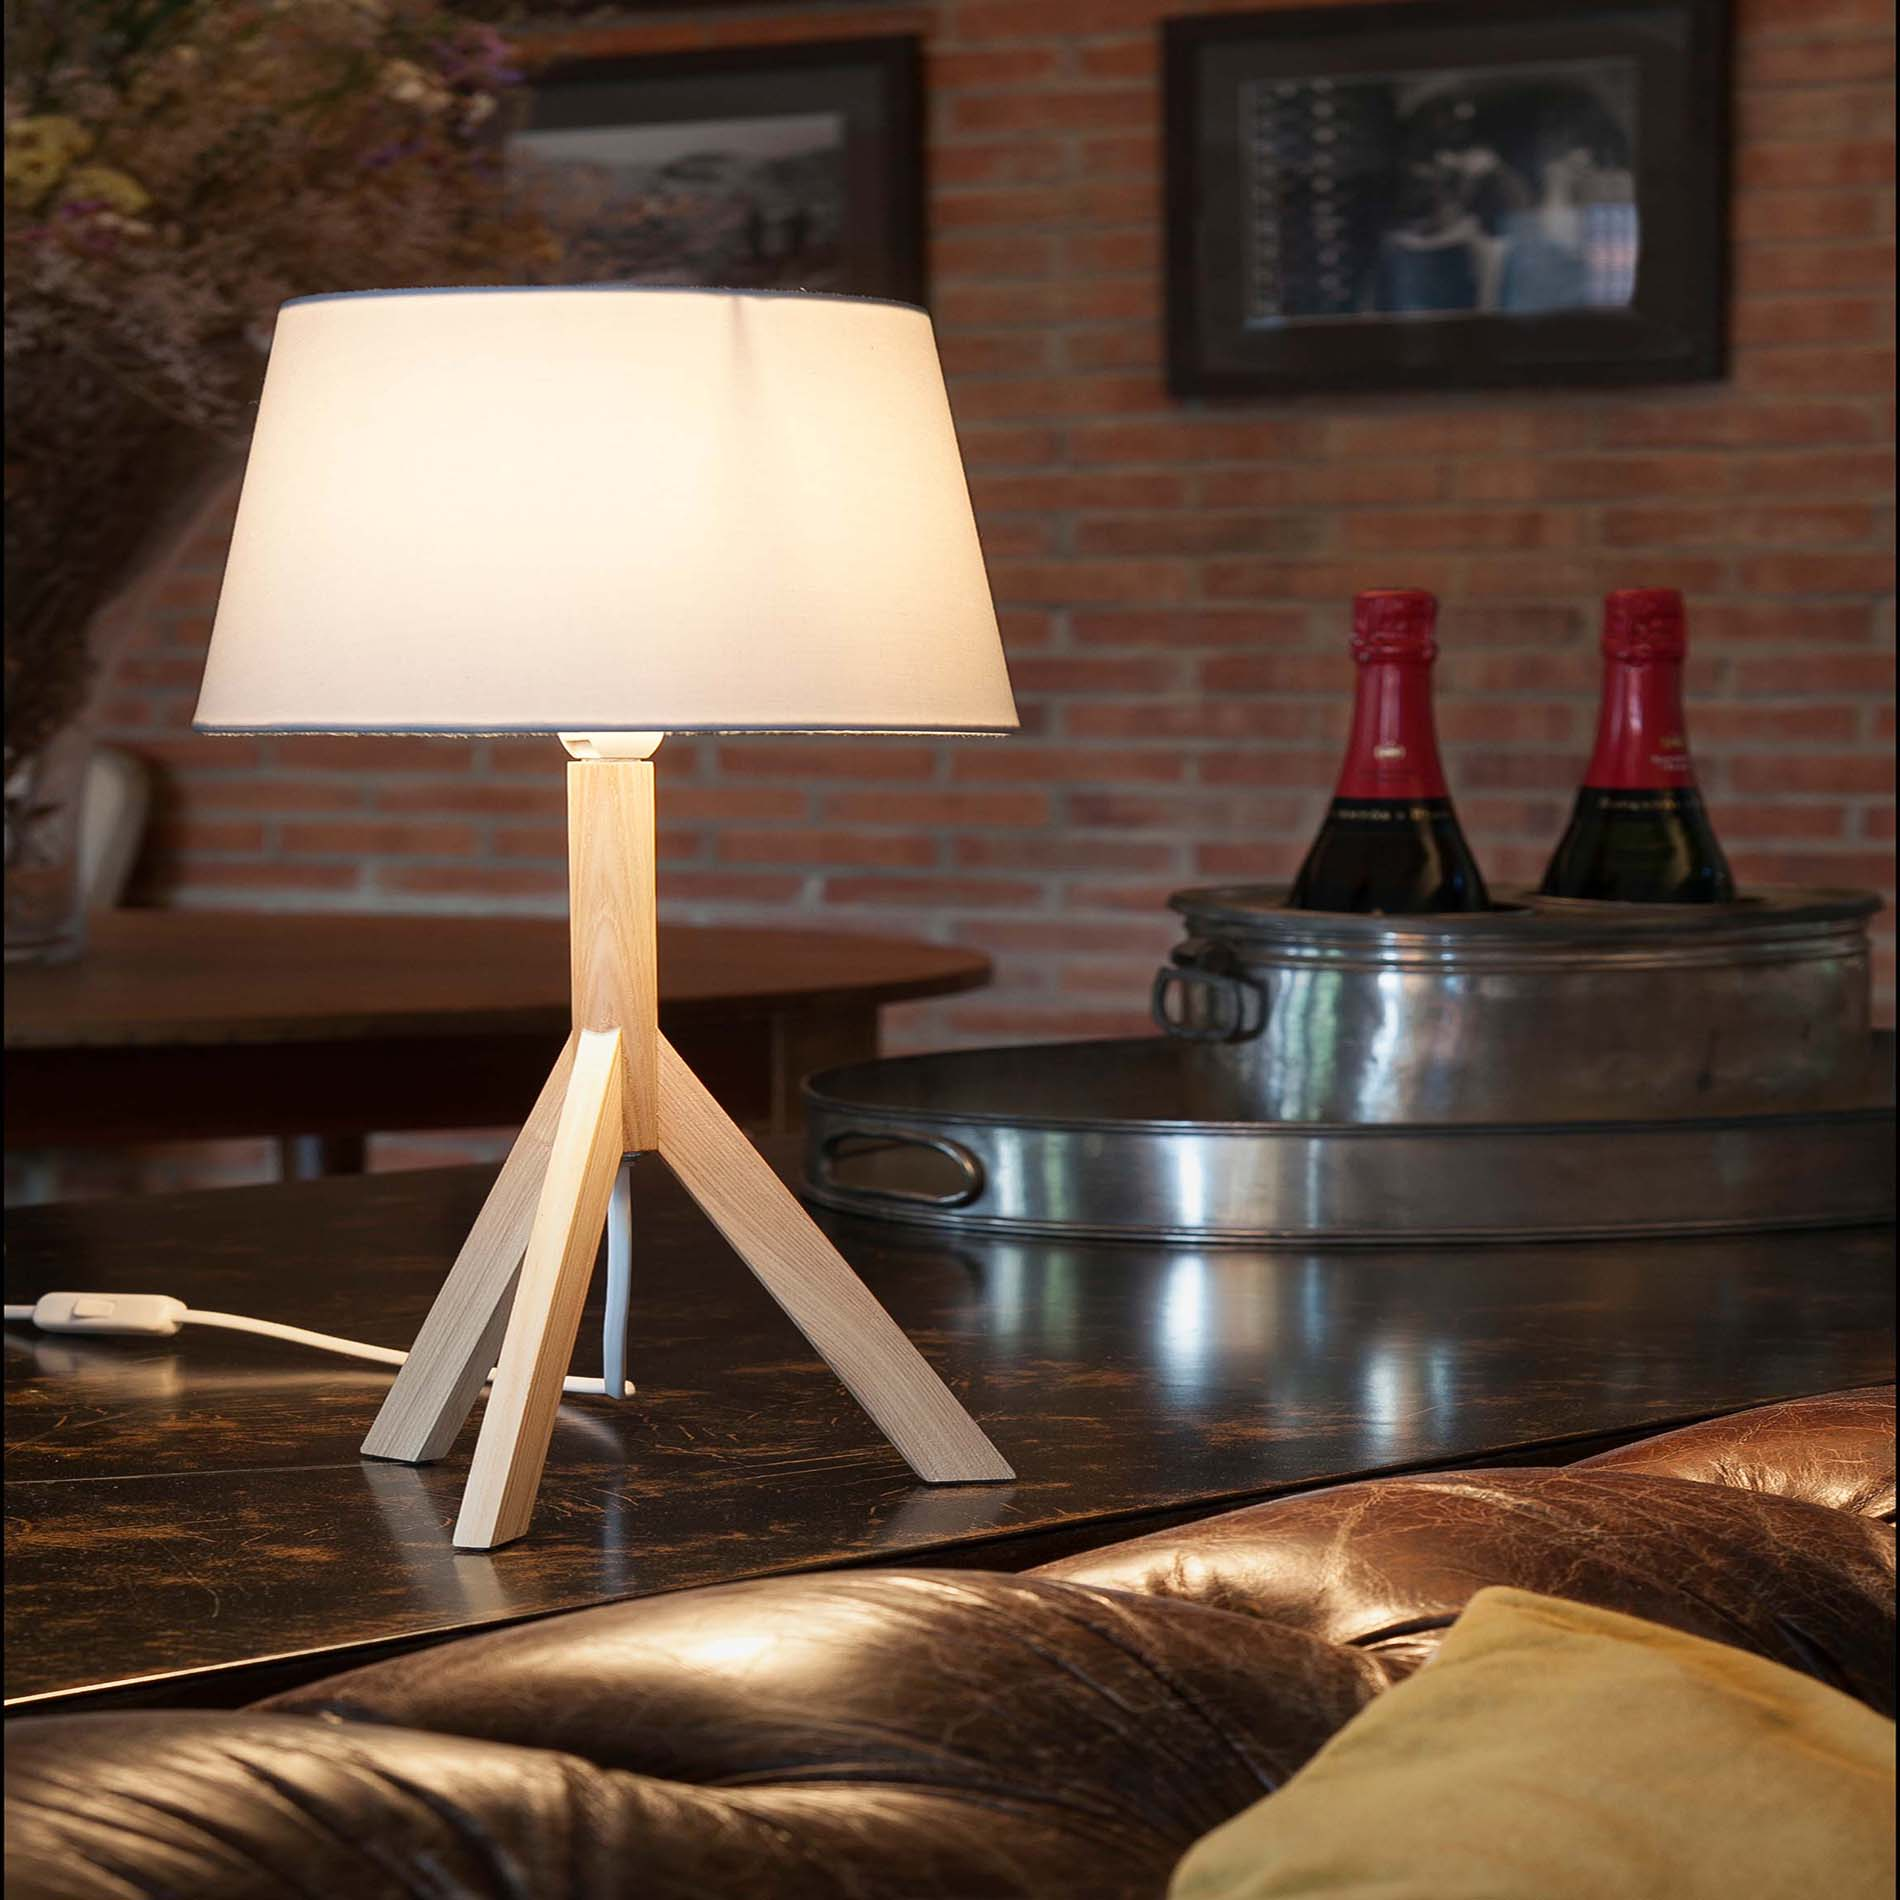 More information of HAT table lamp - Faro